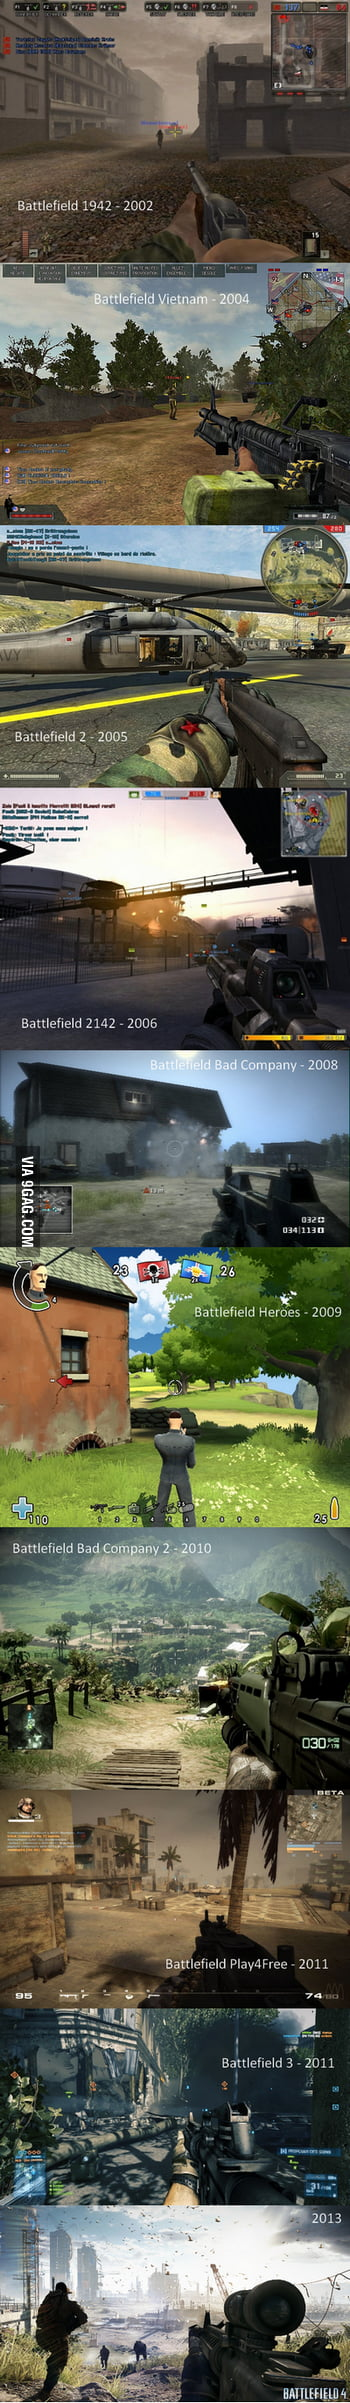 Graphic evolution of Battlefield